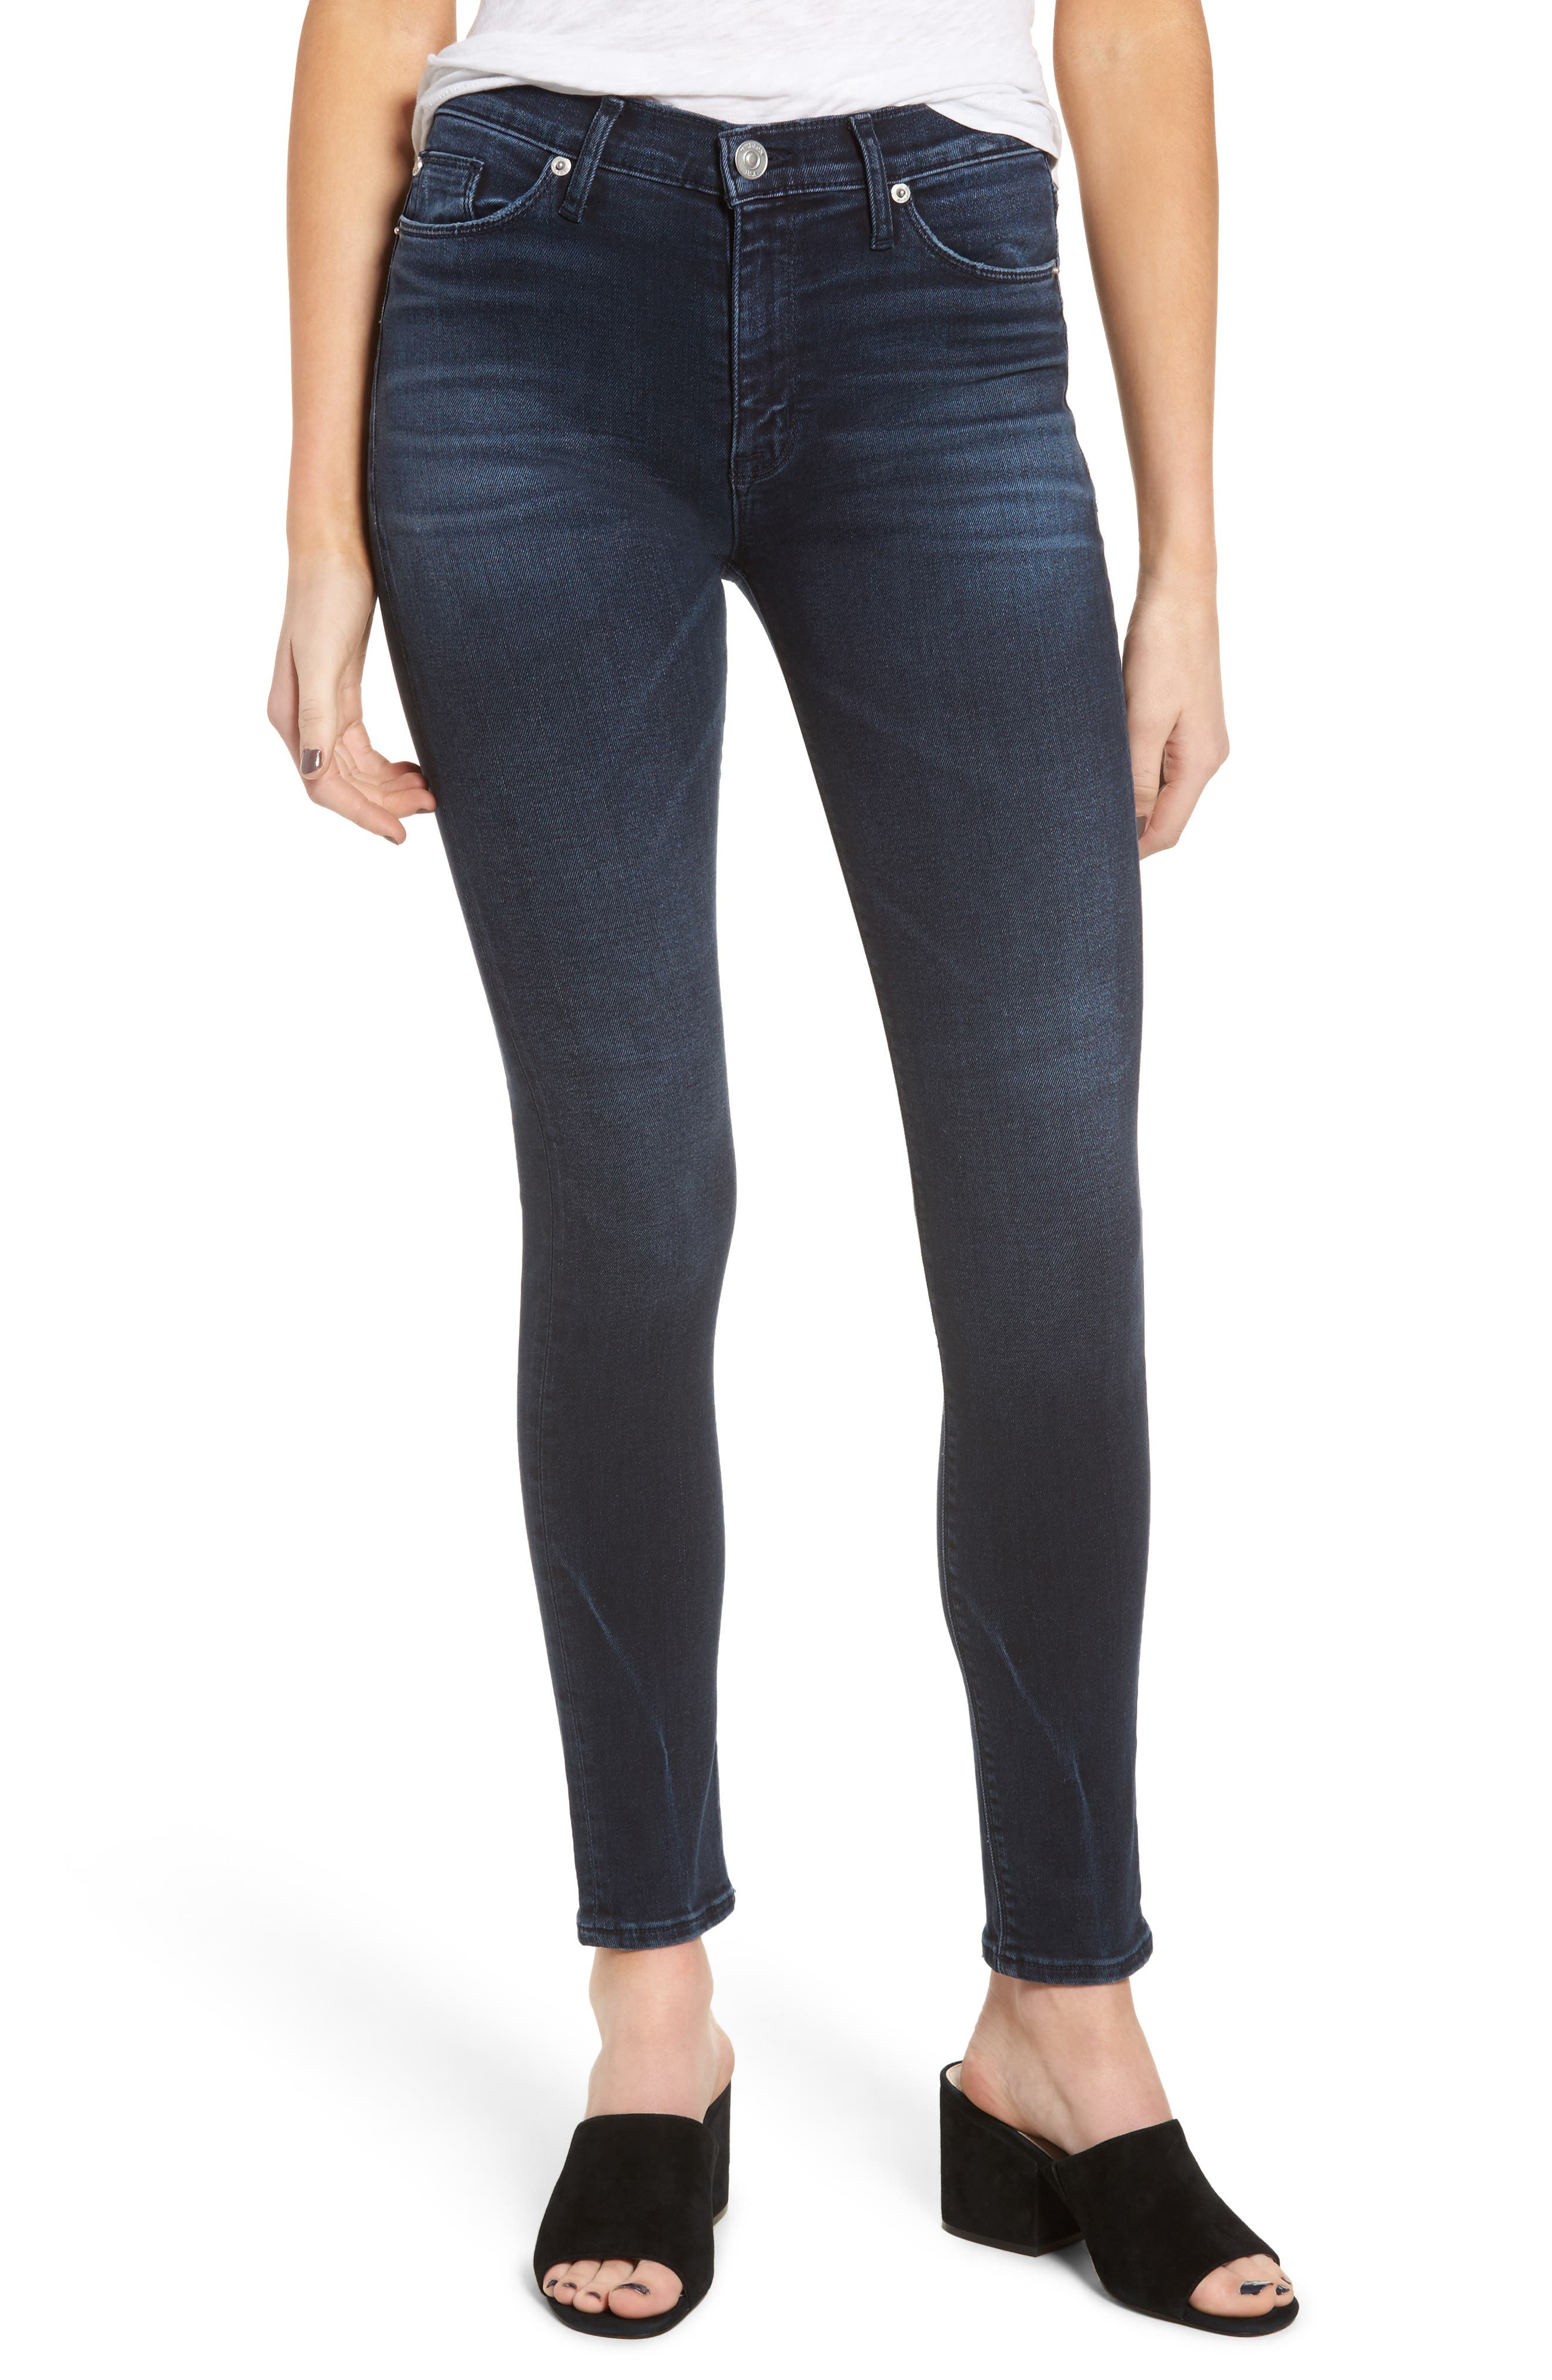 Hudson Barbara High Waist Super Skinny Jeans,                         Main,                         color, Night Ryder